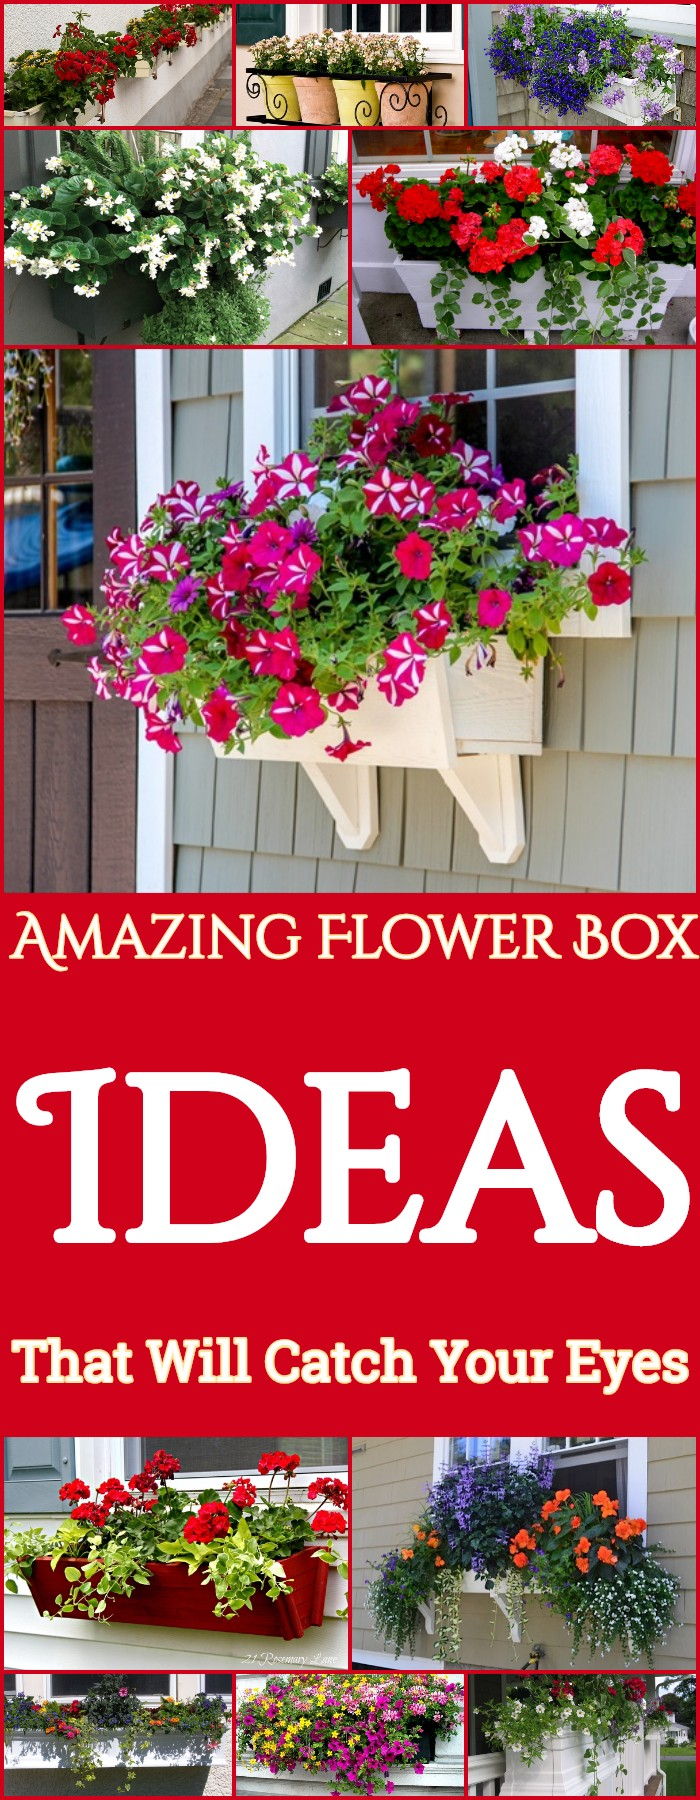 Amazing Flower Box Ideas That Will Catch Your Eyes